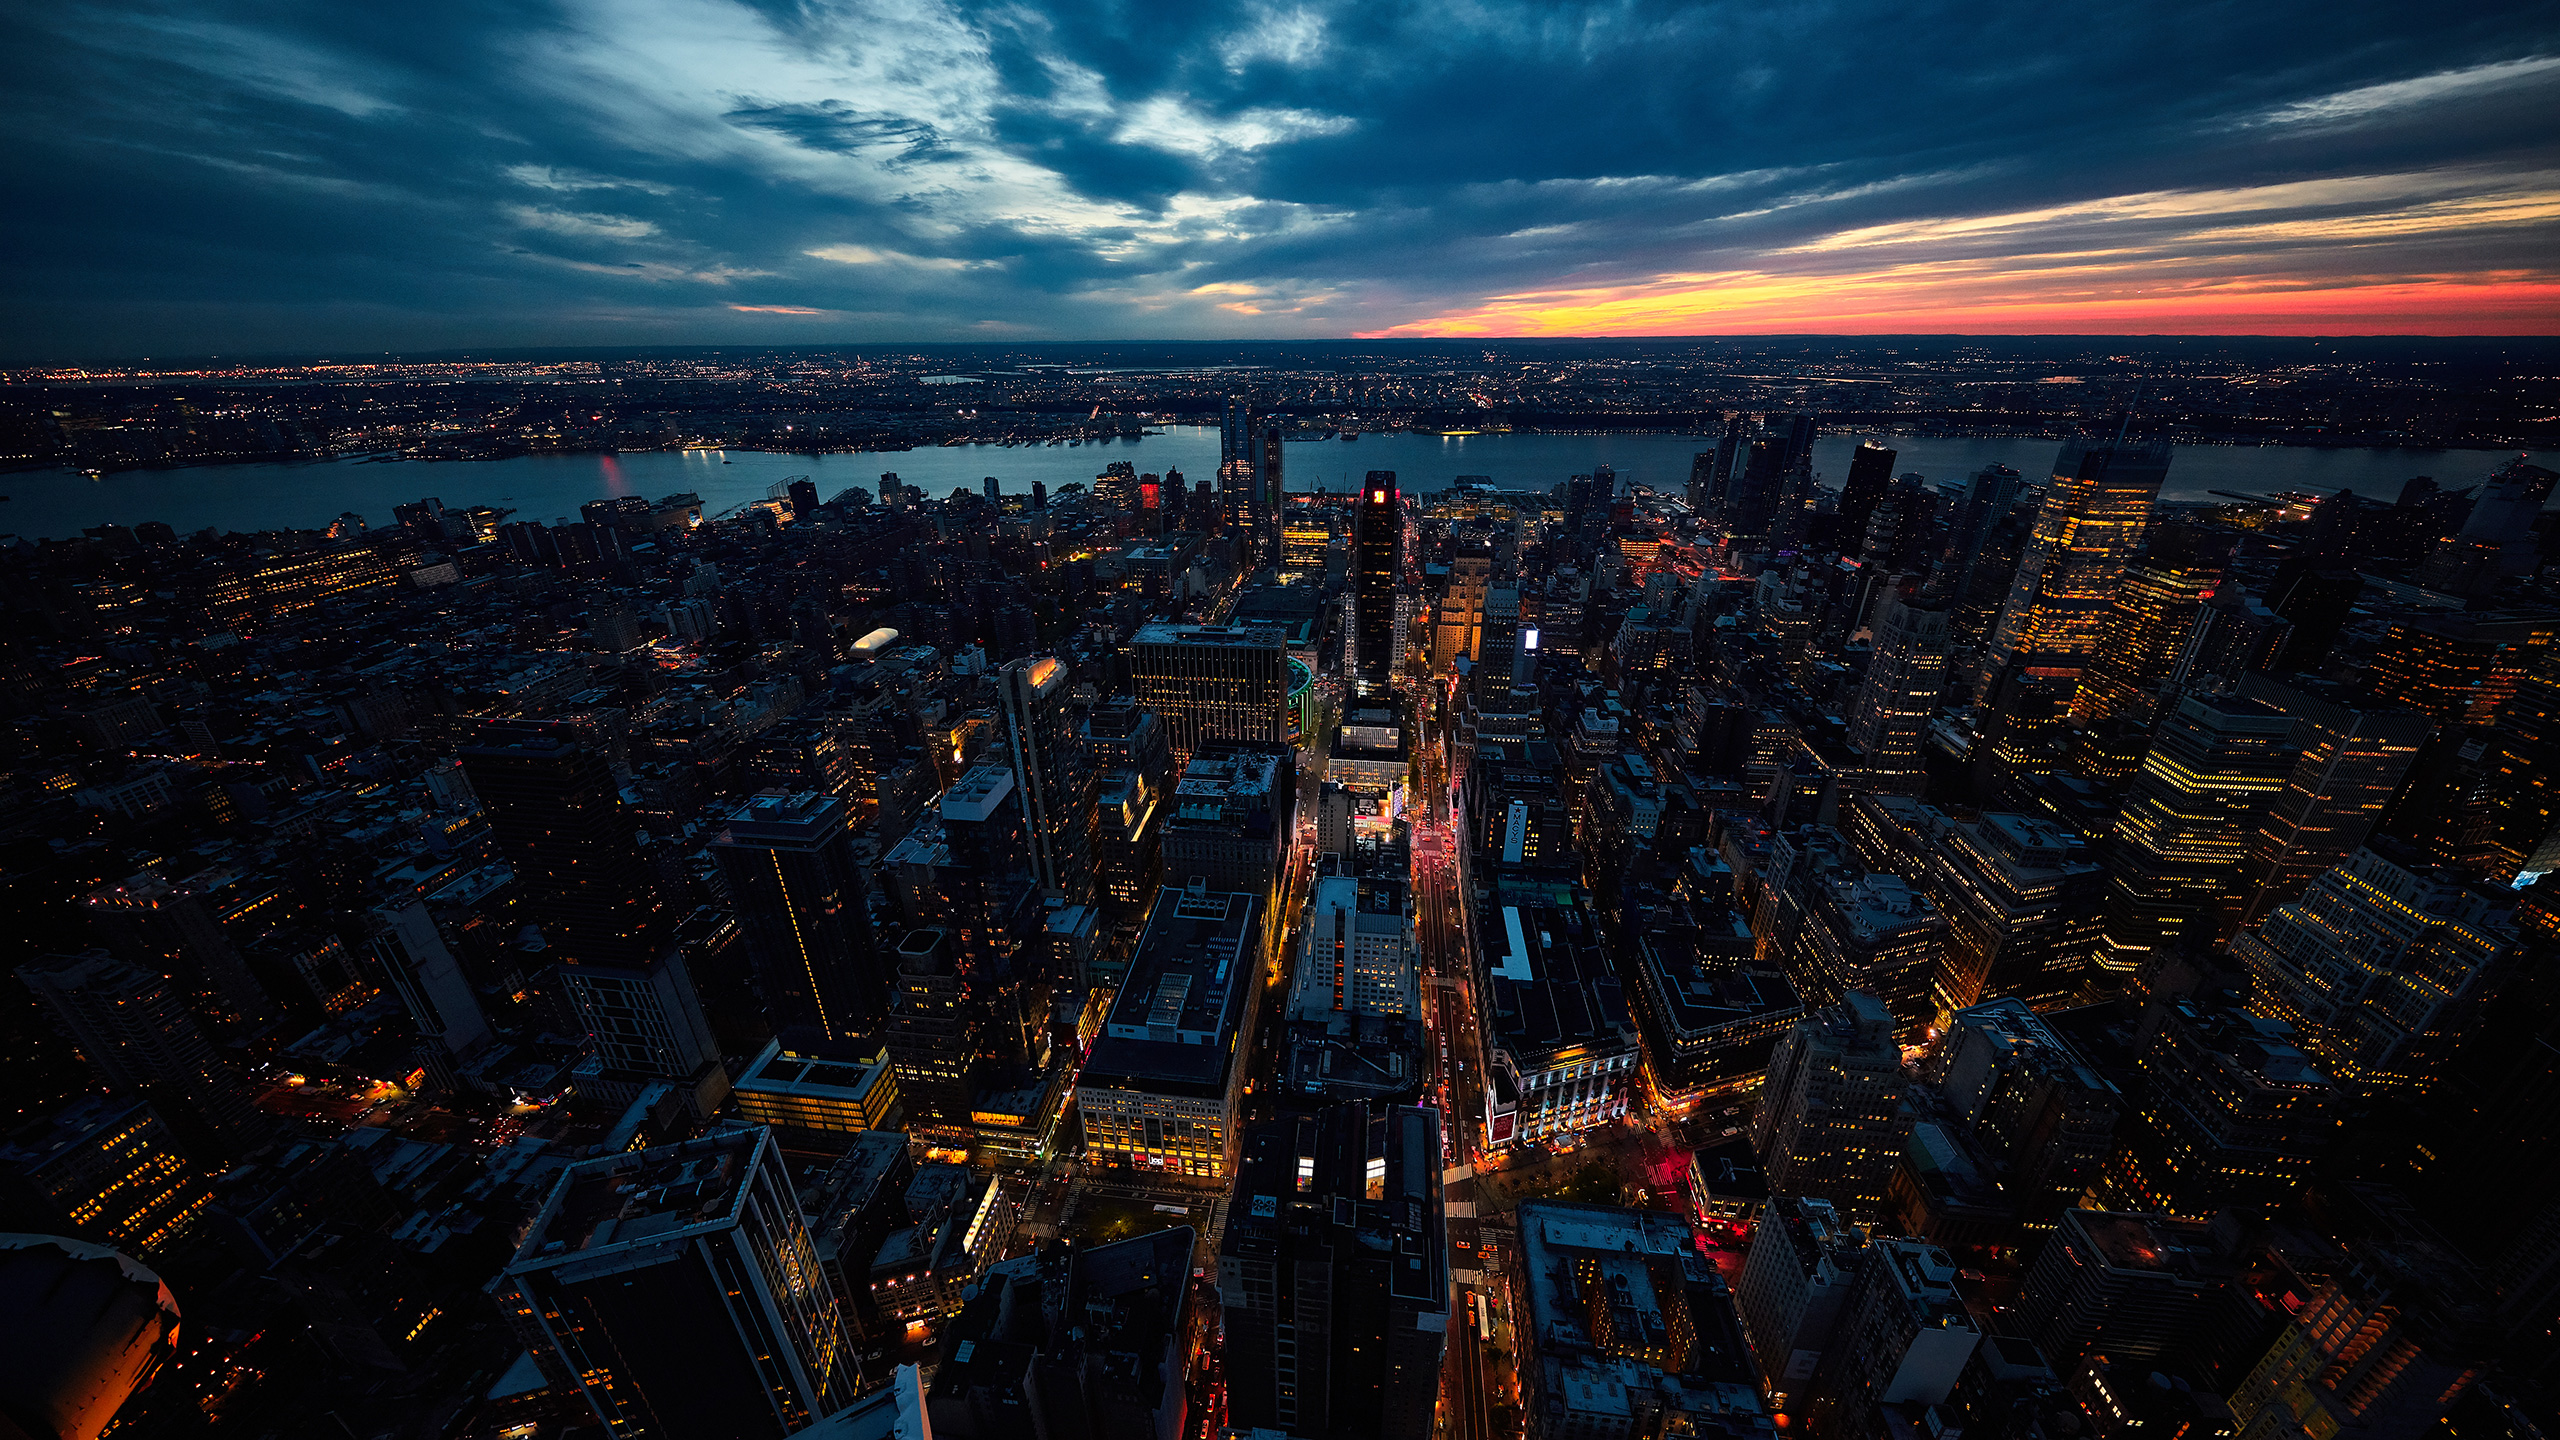 1366x768 Sunset New York City 1366x768 Resolution Hd 4k Wallpapers Images Backgrounds Photos And Pictures